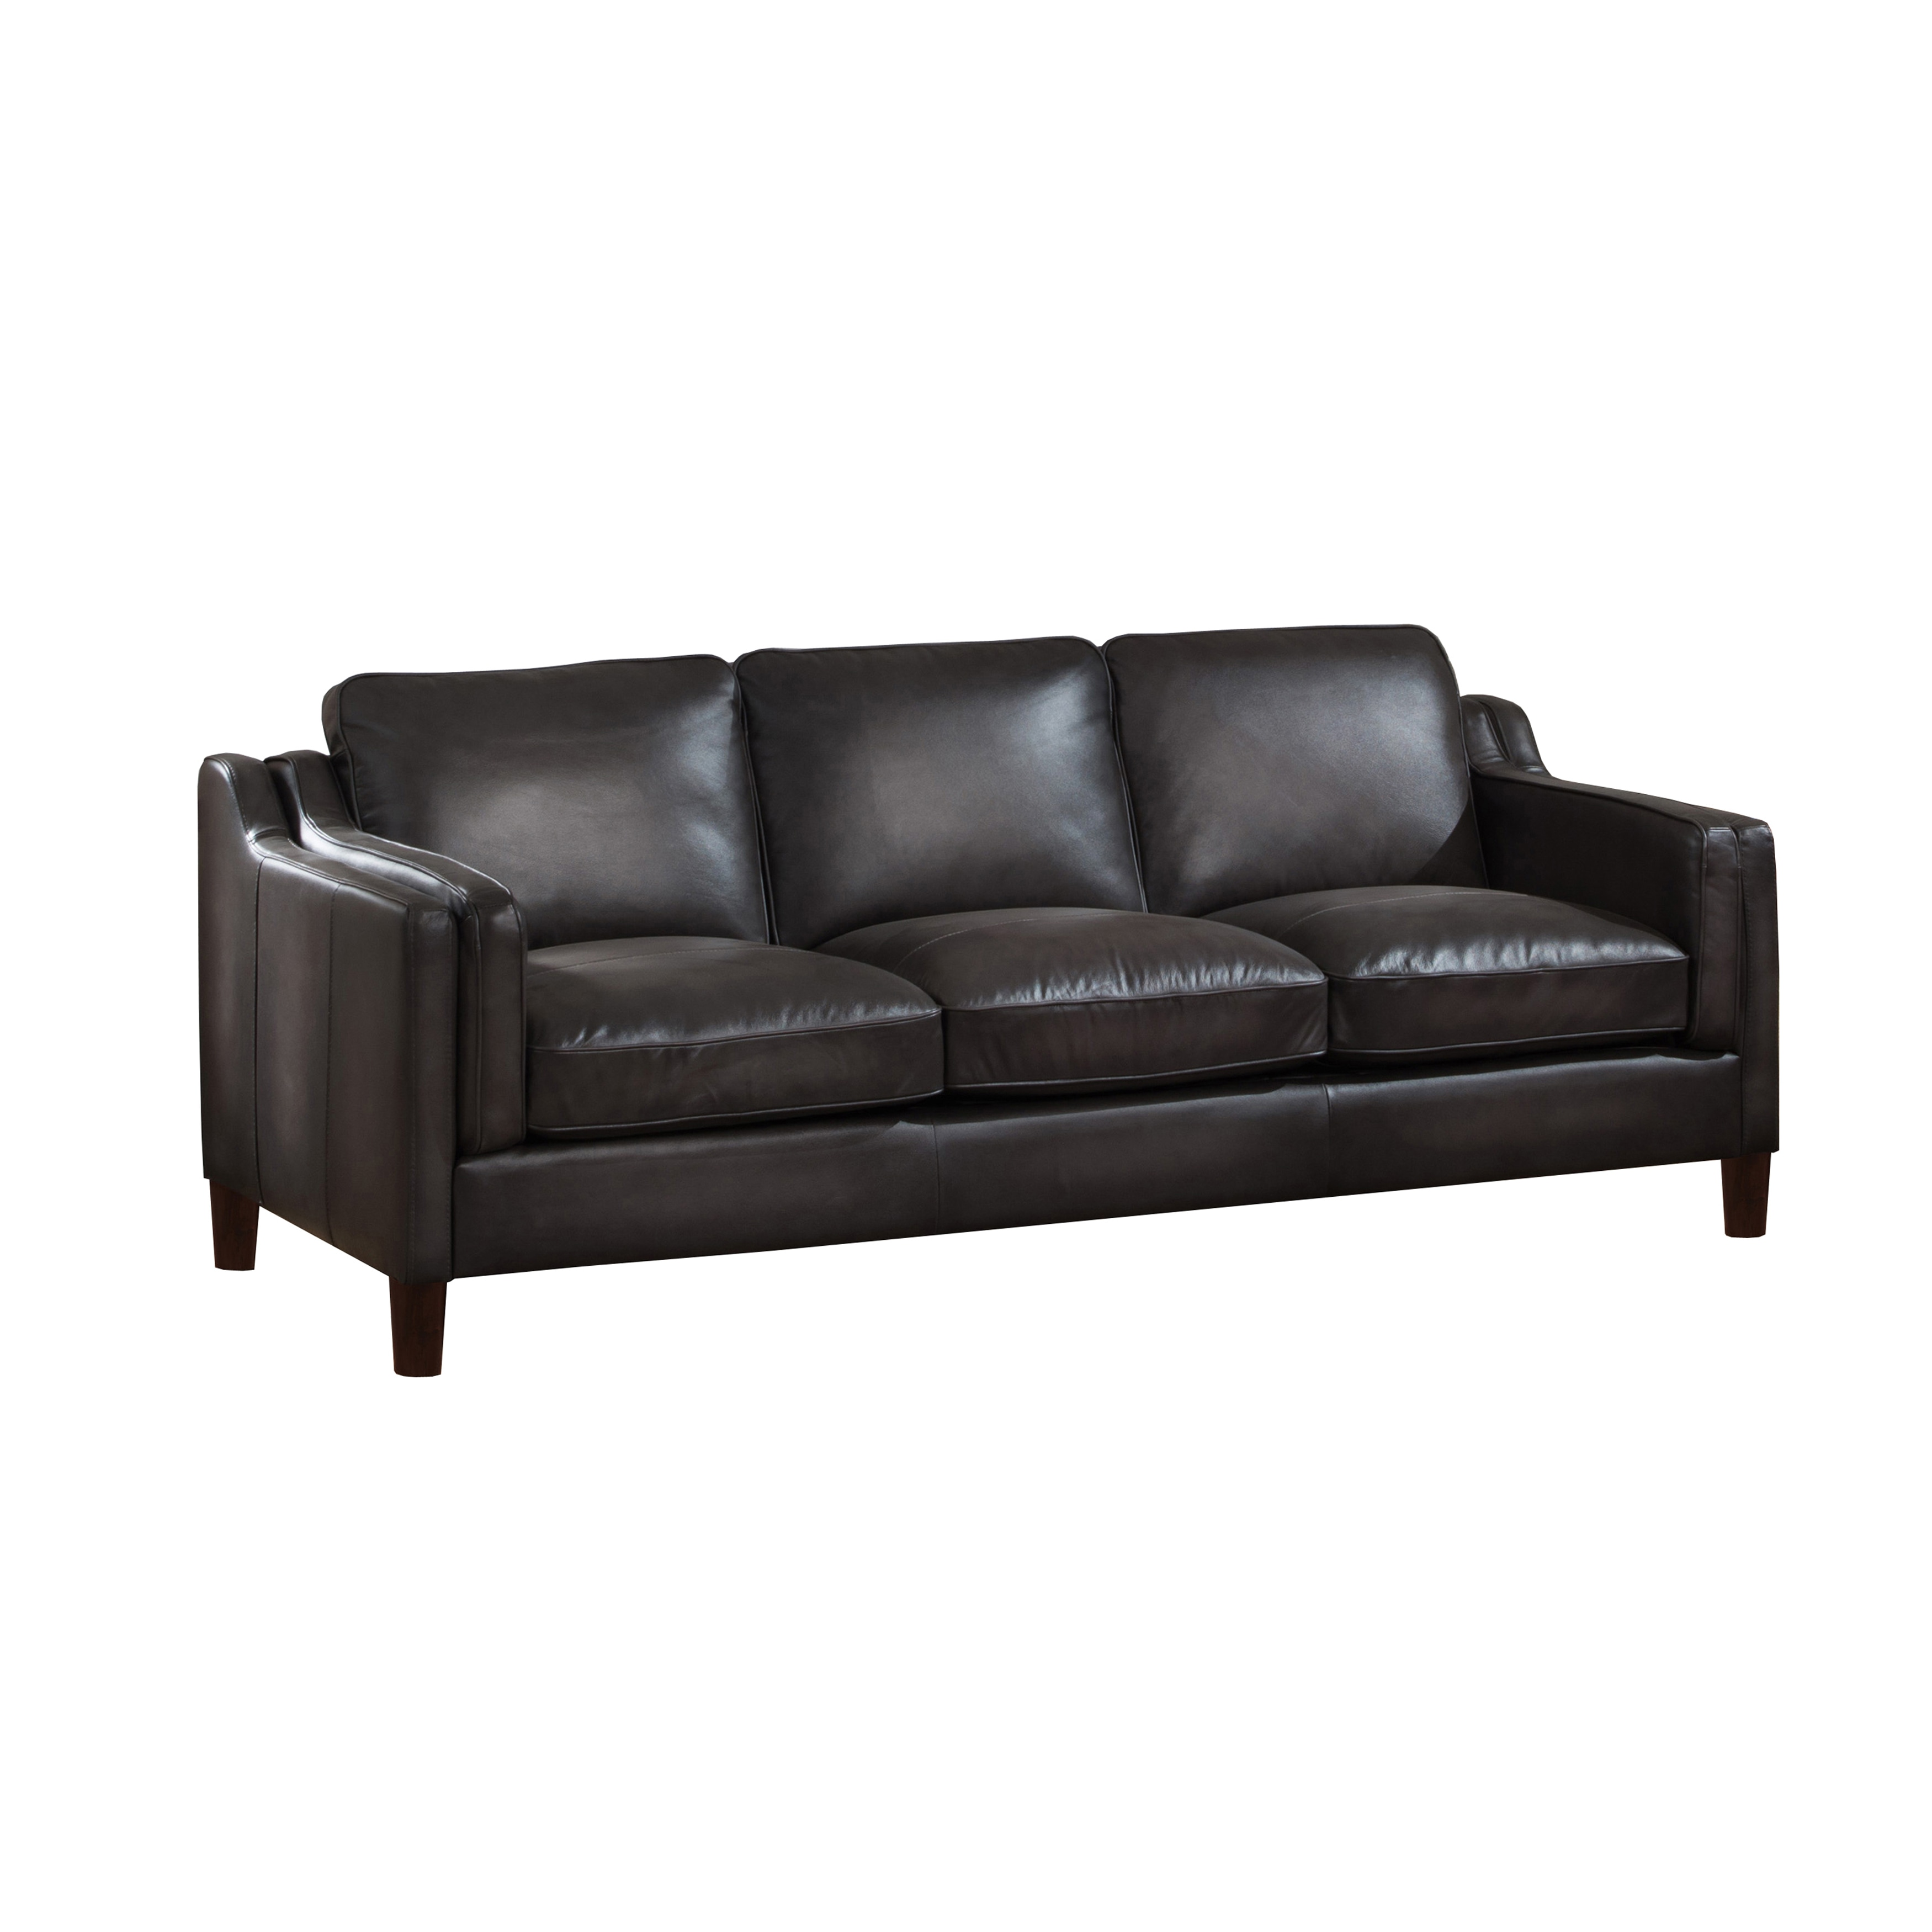 sofa mcgregors furniture atollo and loveseat black product living room leather all category sofas